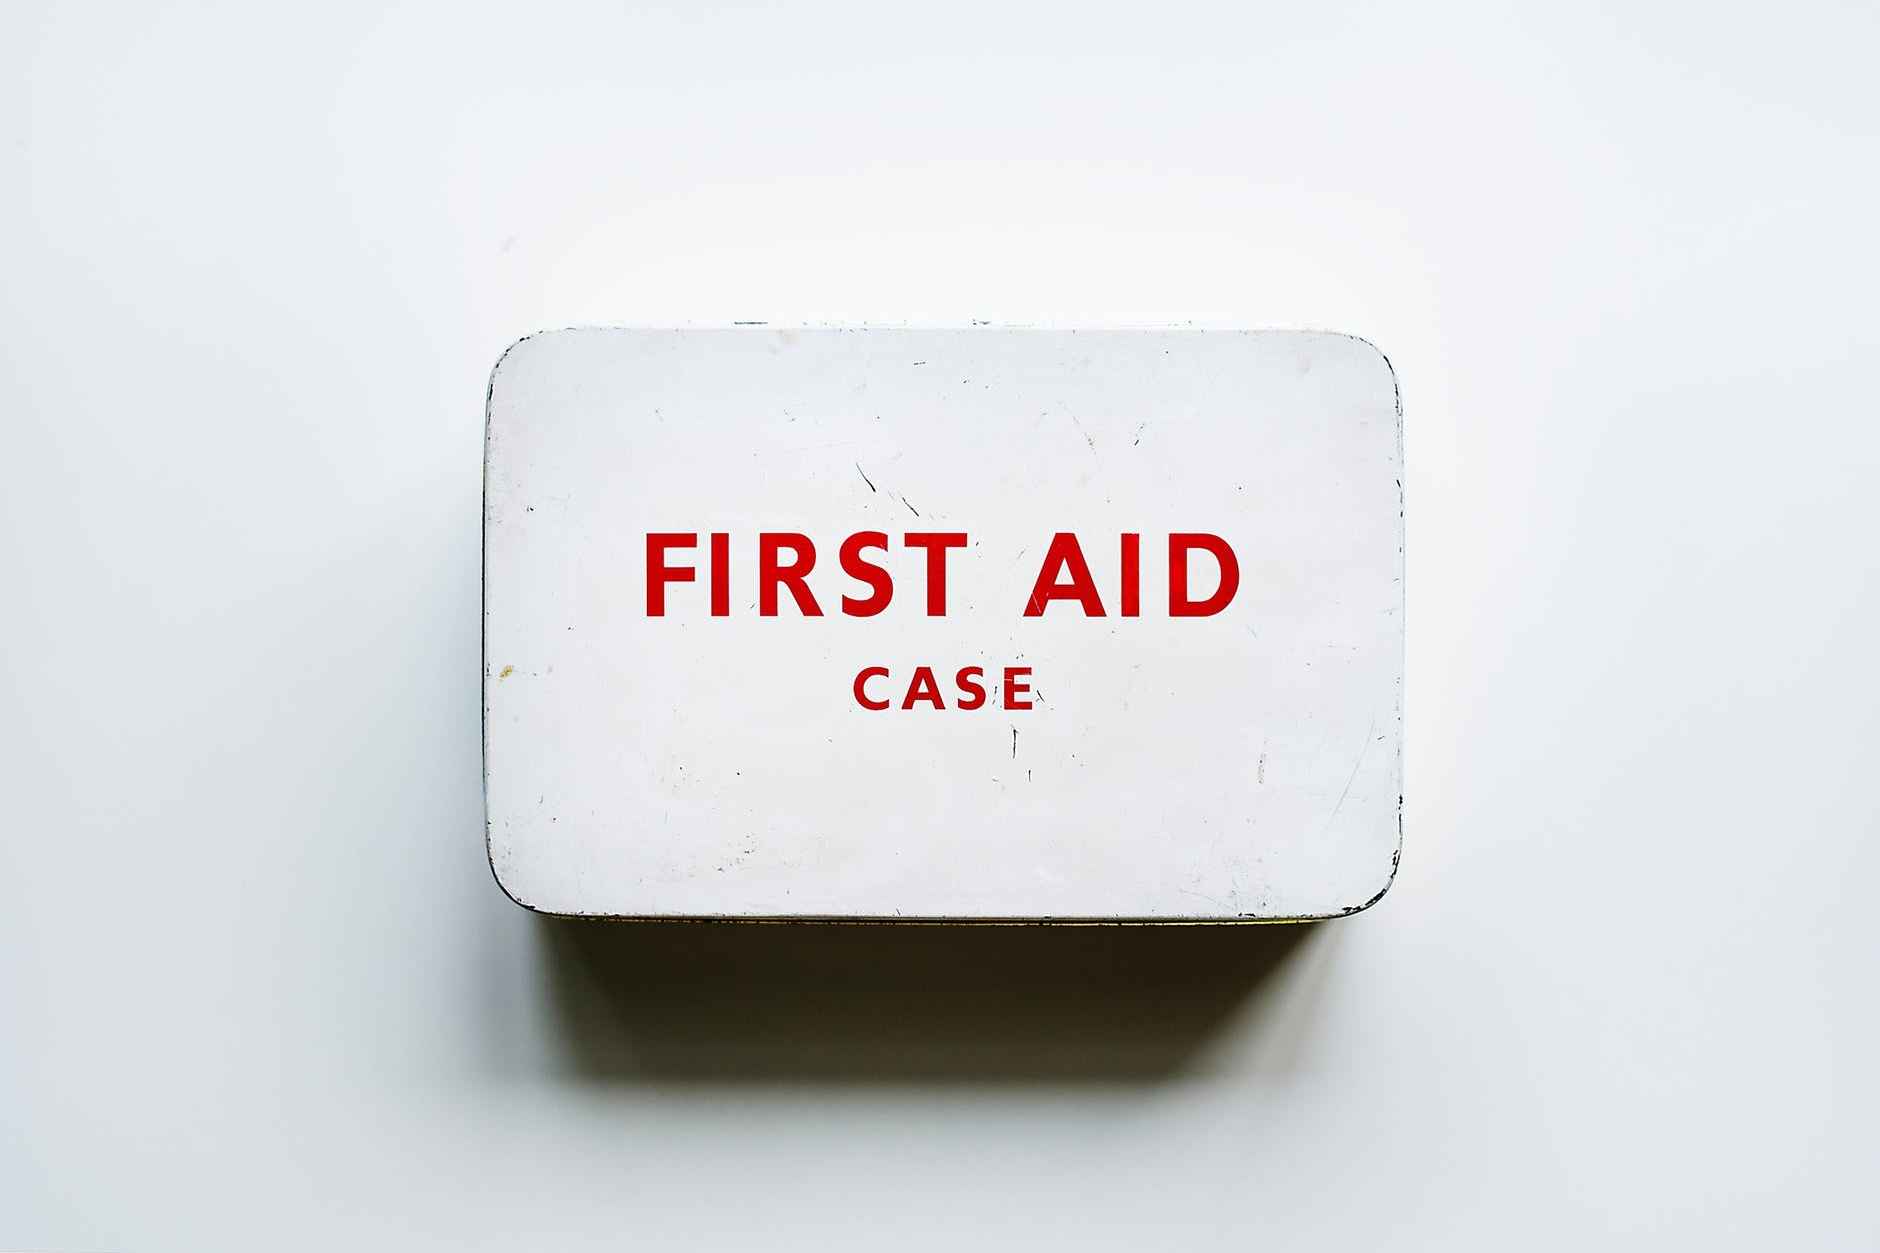 Mental Health First Aid - Mental Health First Aid is an 8-hour course that teaches you how to help someone who may be experiencing a mental health or substance use challenge. The training helps you identify, understand and respond to signs of addictions and mental illnesses.